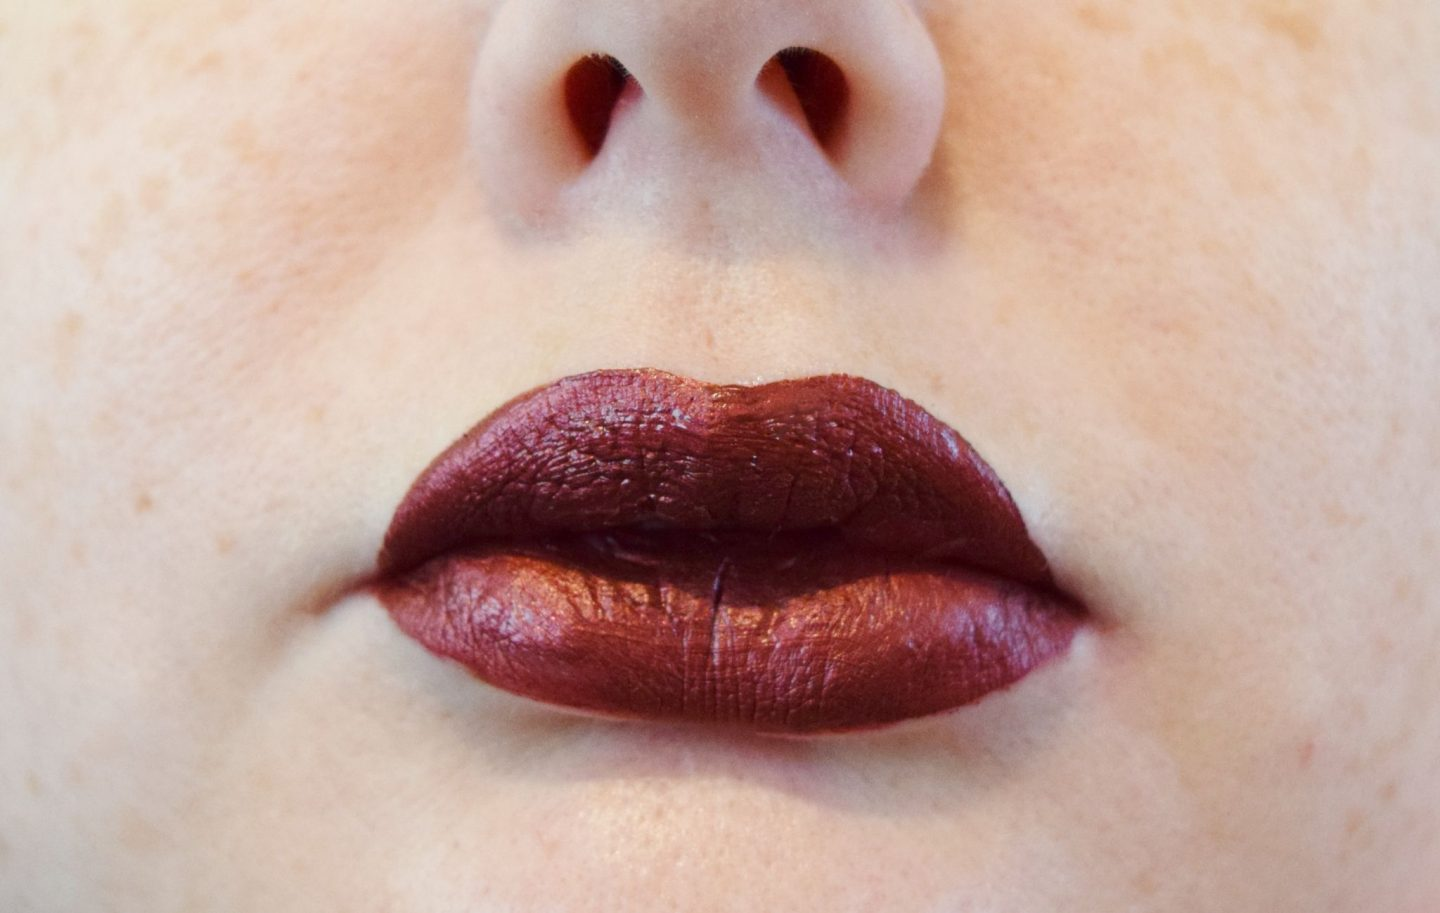 Smashbox Always On Metallic Matte Lipstick in Vino Noir swatch